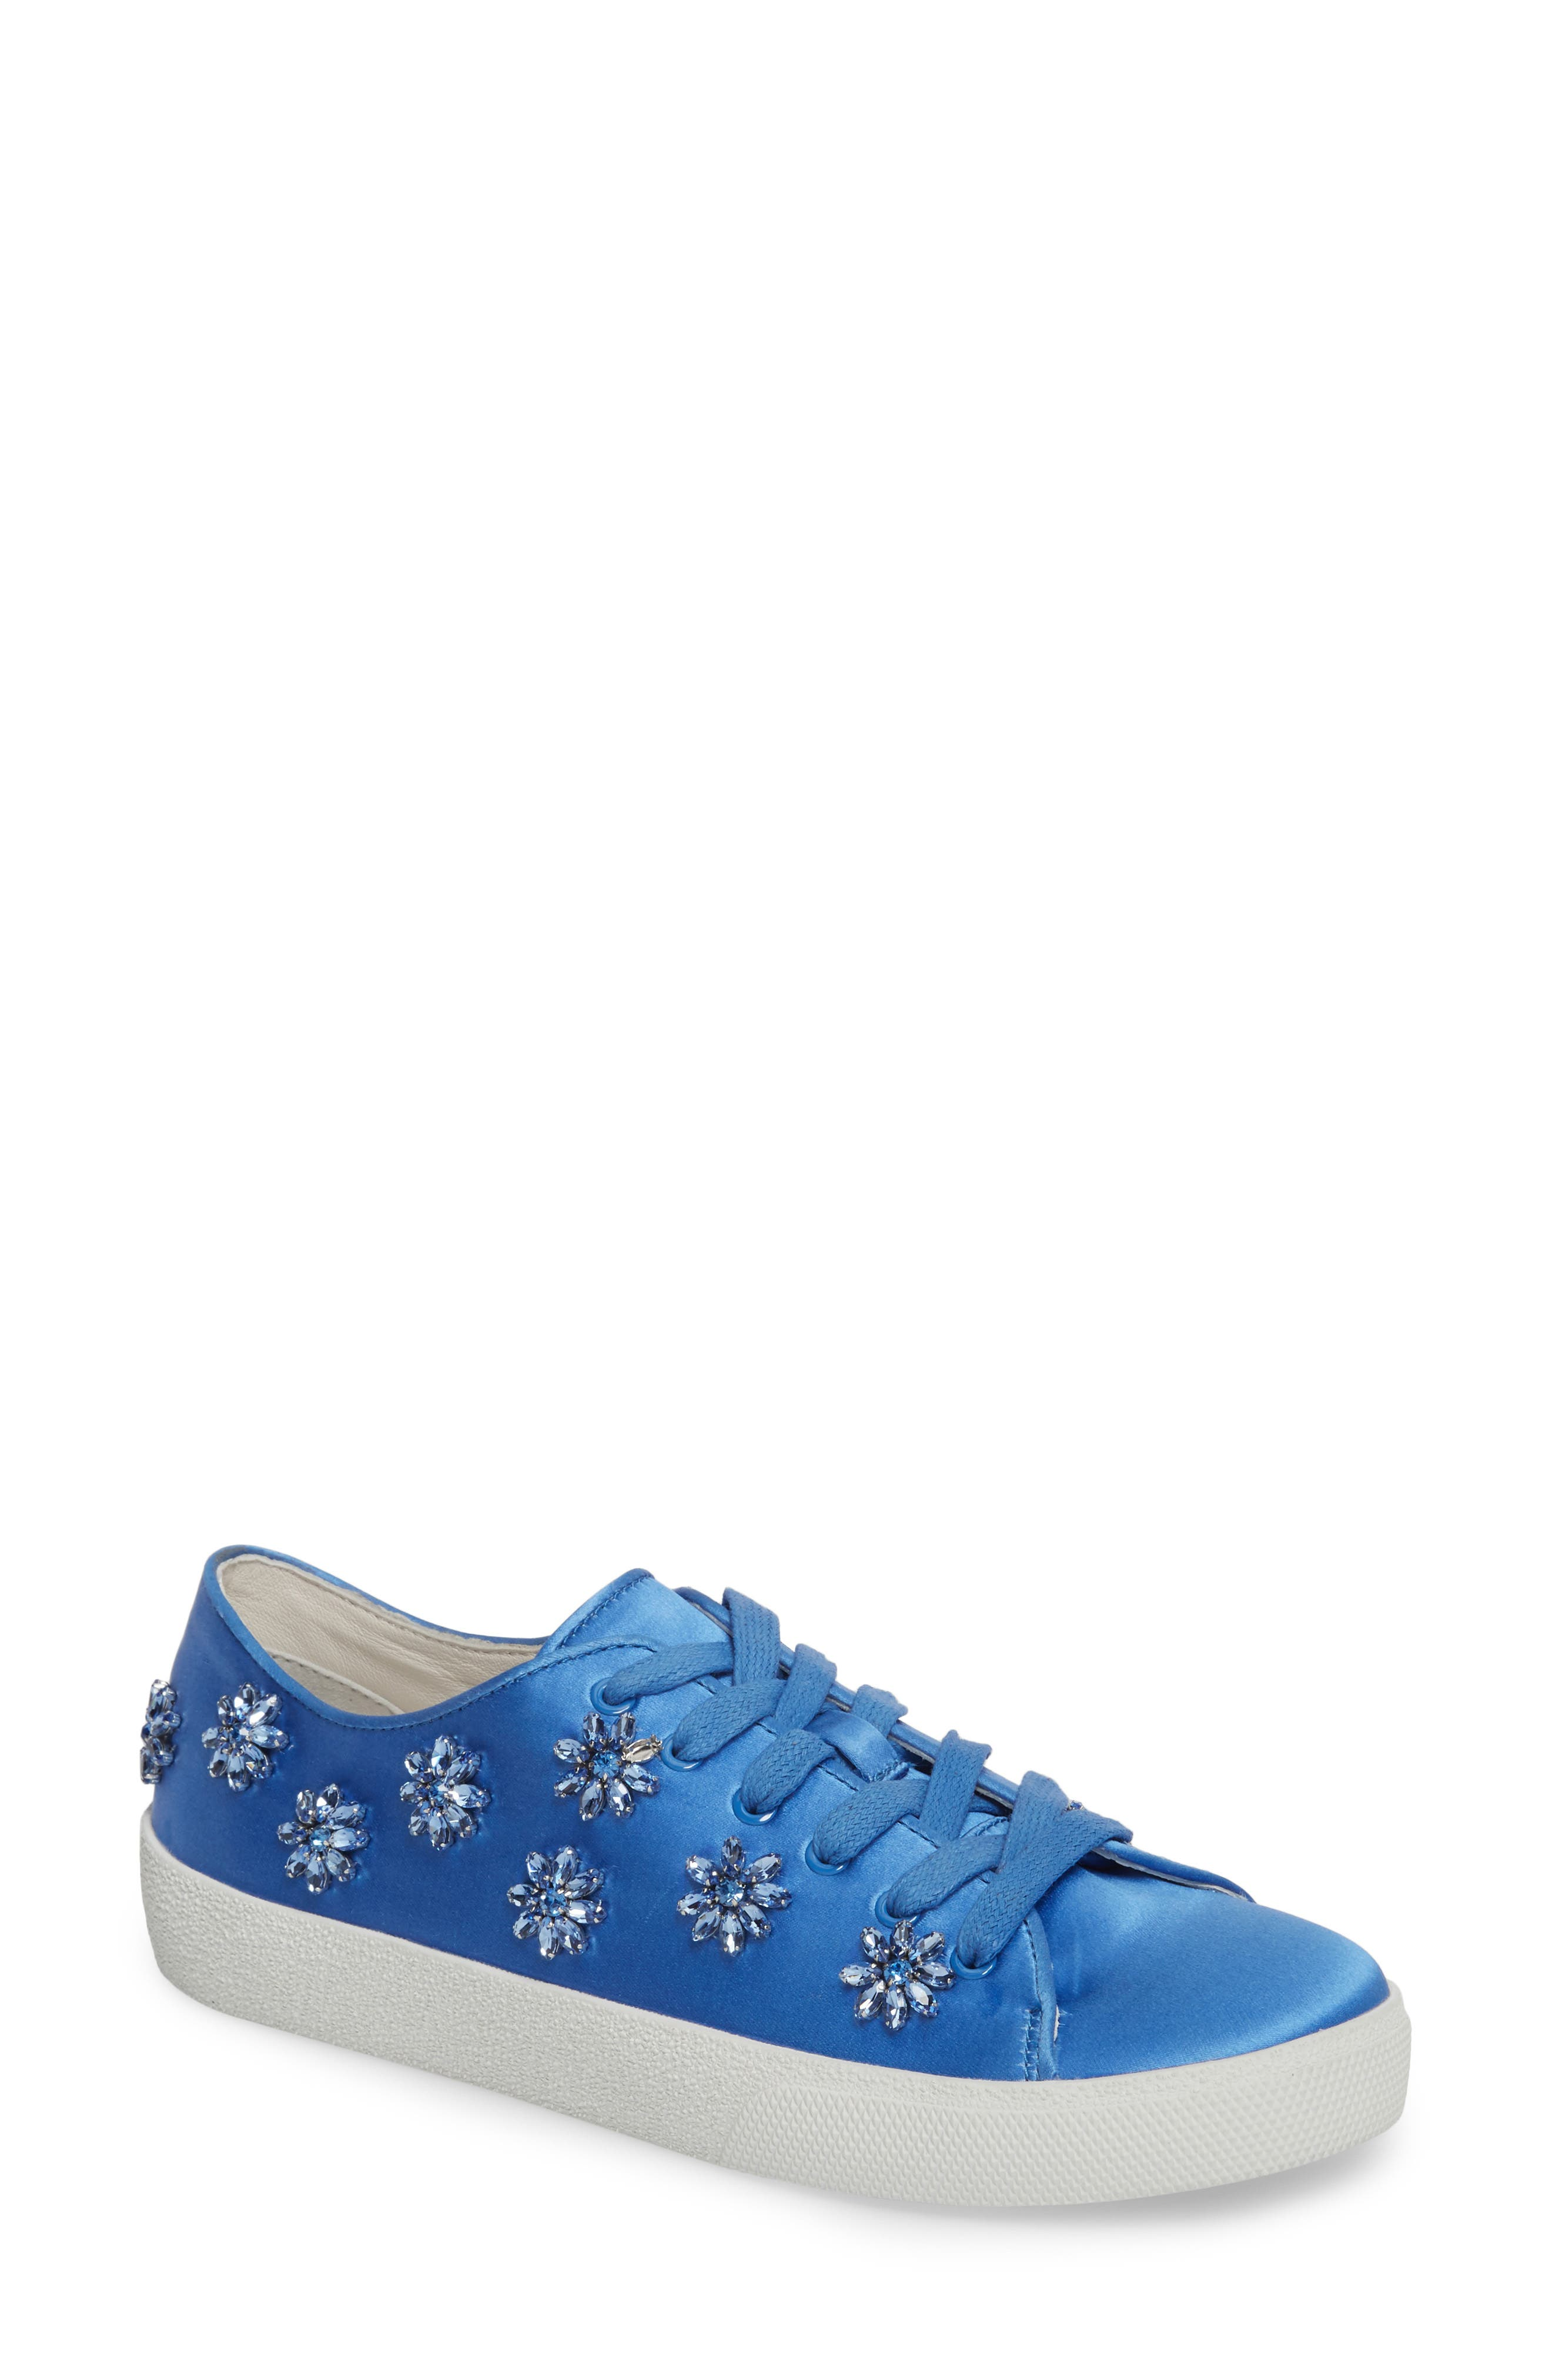 Cleo Crystal Embellished Sneaker,                             Main thumbnail 1, color,                             430